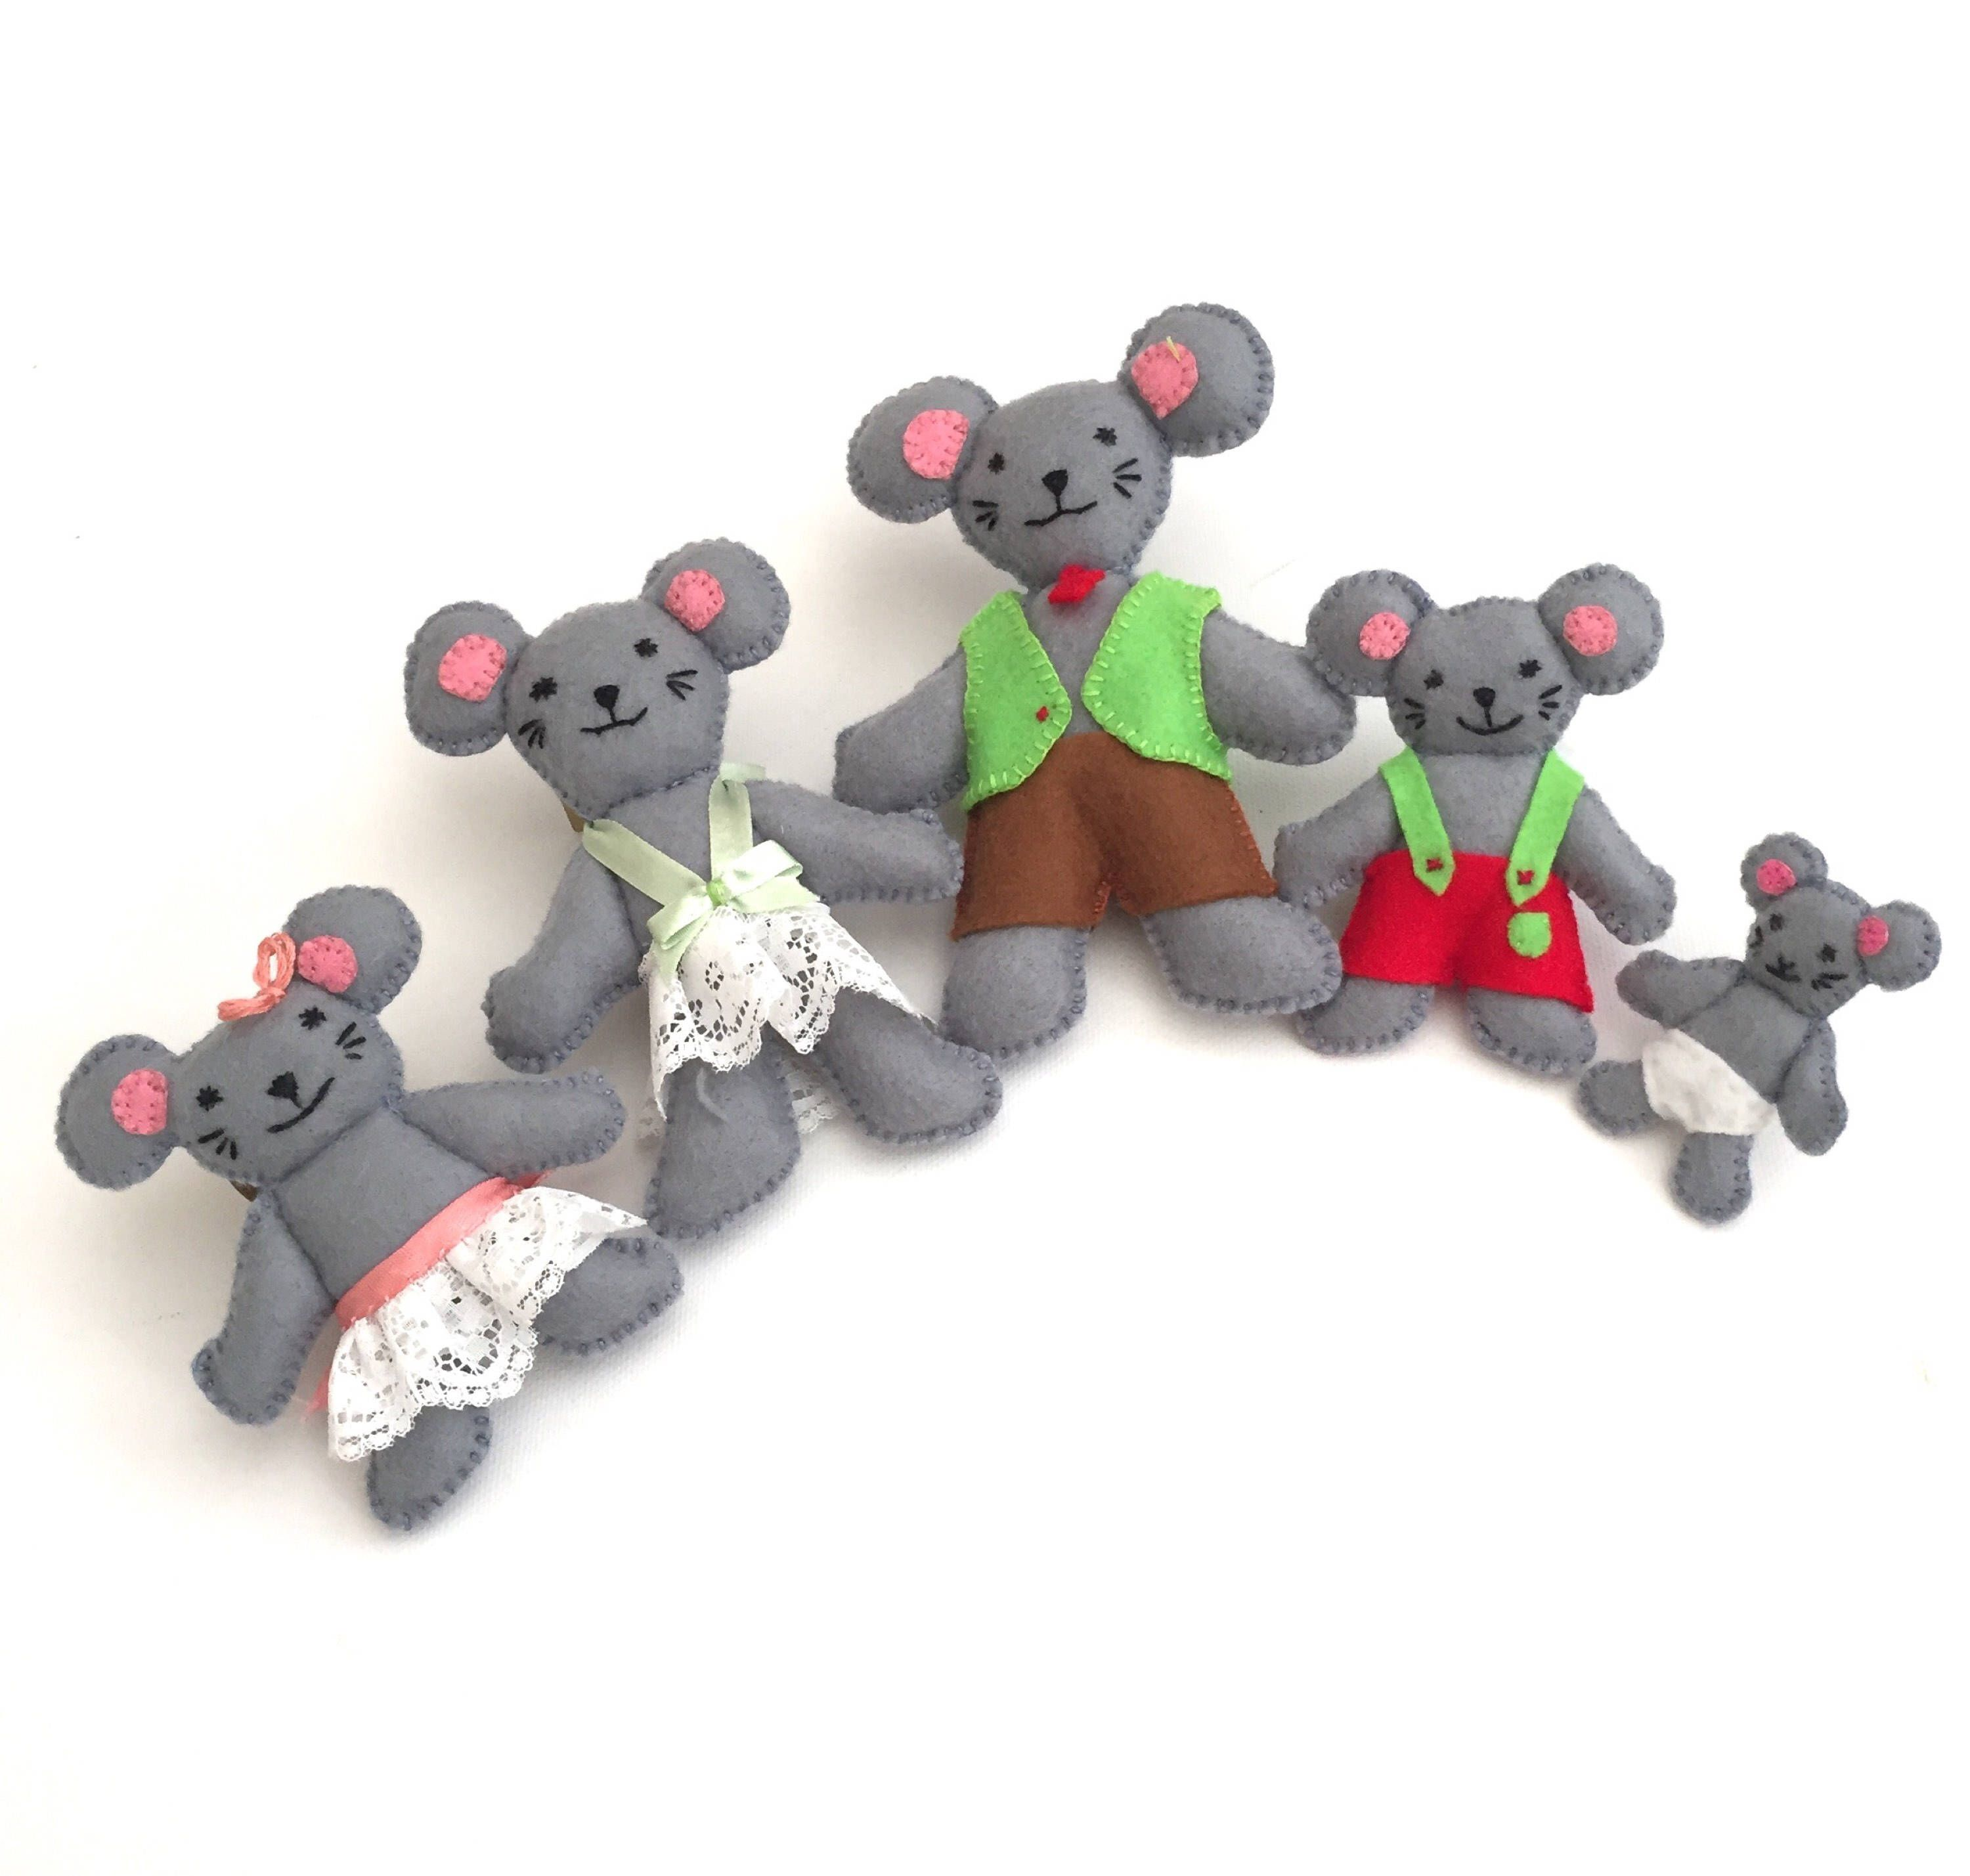 Handmade Felt Mouse  - Felt Mouse Family - Felt Mice - Toy Gift - Plushie Mouse - display - Mice by EverSewNice on Etsy https://www.etsy.com/listing/555309501/handmade-felt-mouse-felt-mouse-family